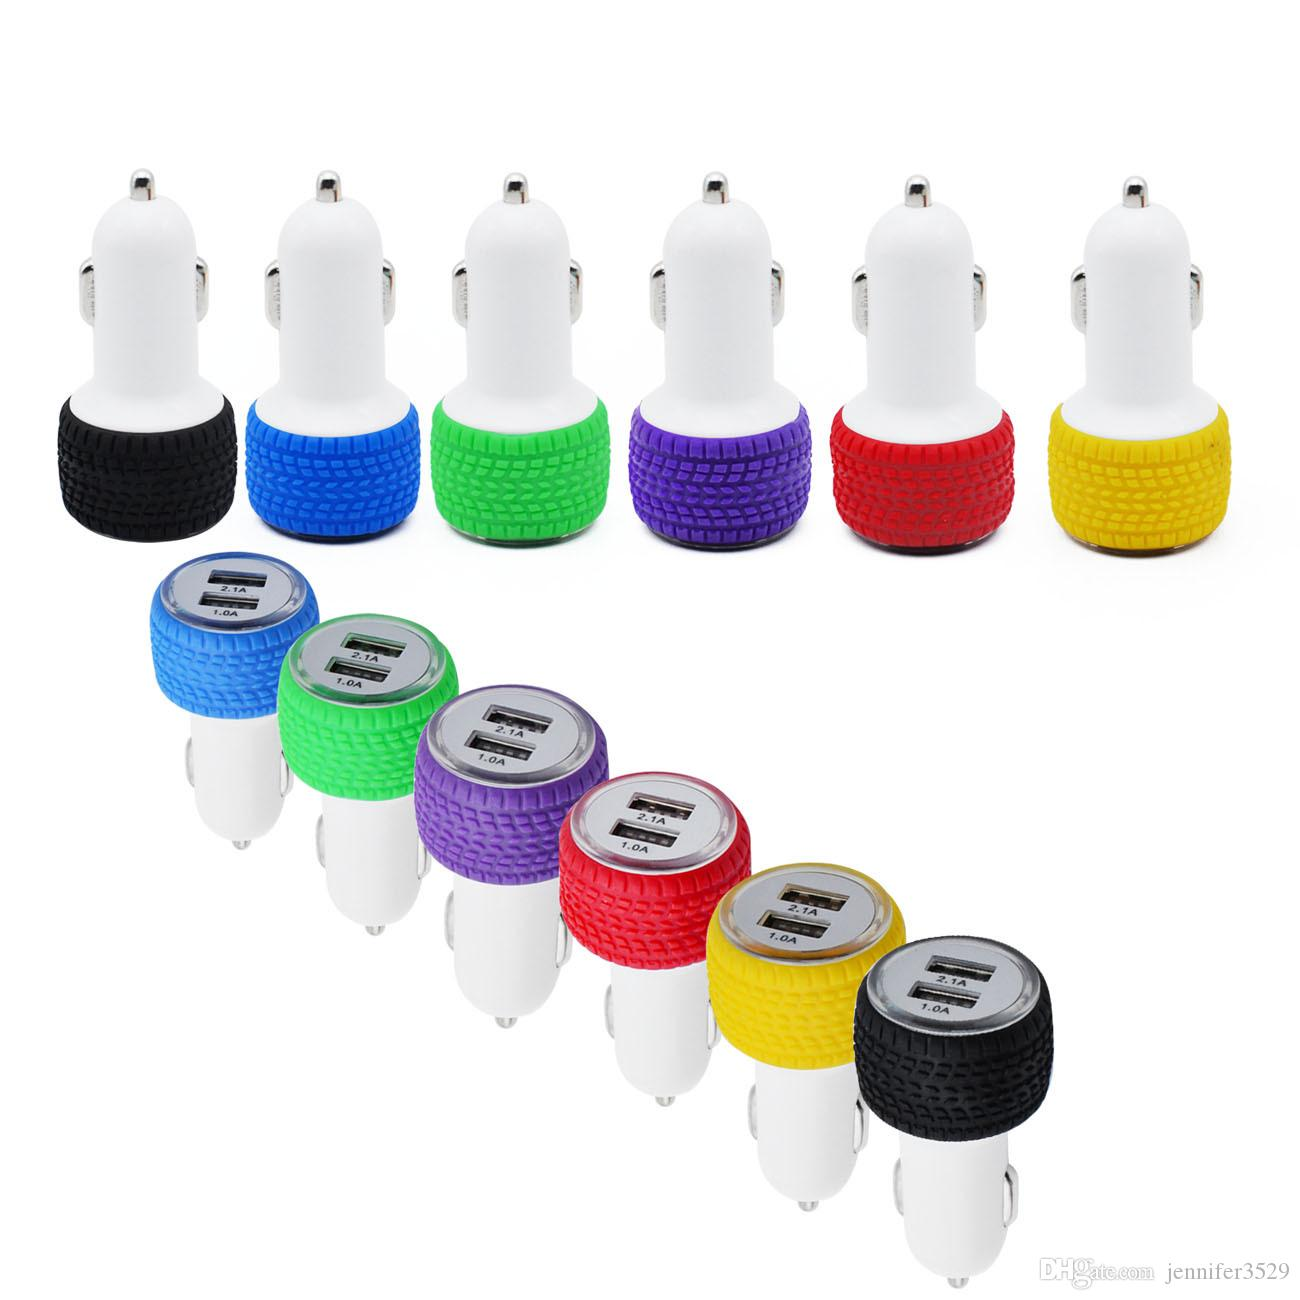 2A silicone car charger 2 USB Ports tyre Car Charger portable cigarette lighter socket charger for iPhone LG Samsung HTC LG